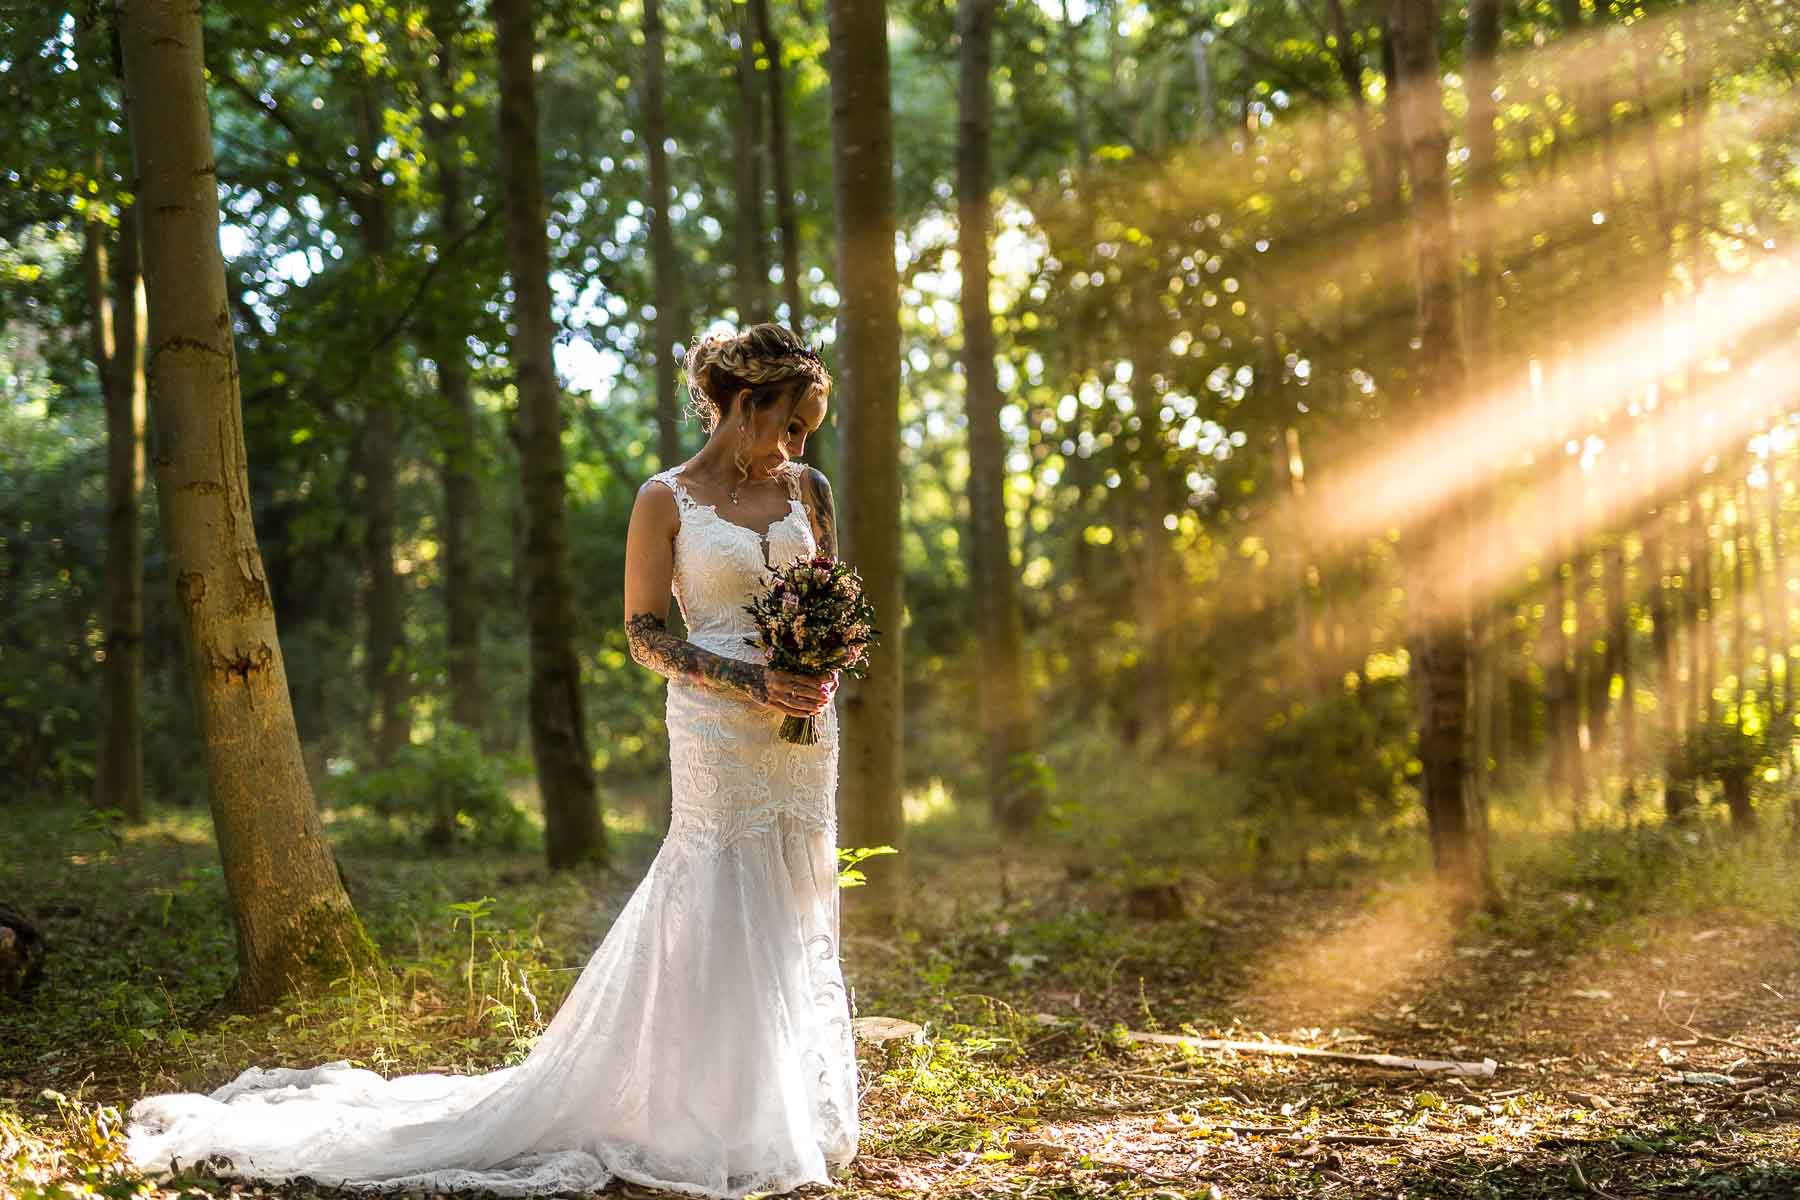 beautiful ethereal photo of a wedding bride in a wood in northampton, with sun beams piecing the woodland canopy